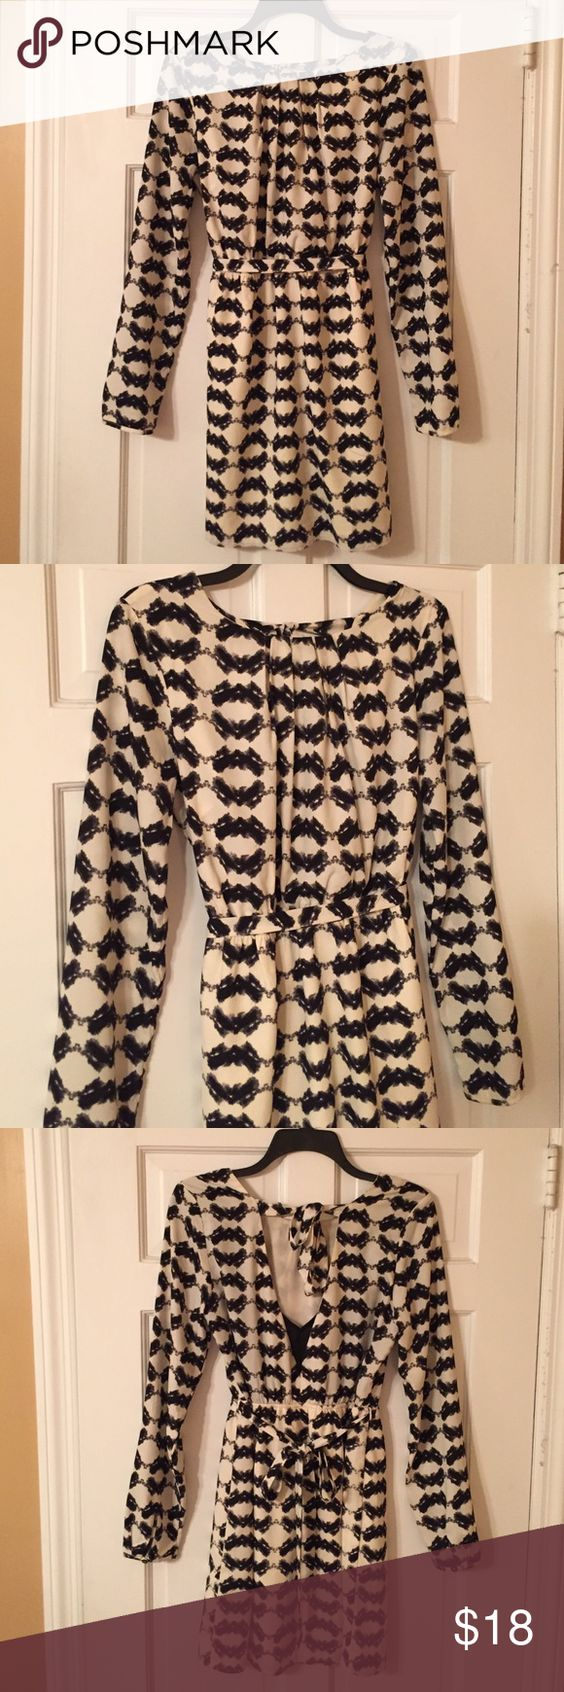 """Black & off white patterned long sleeve dress Adorable black & off white pattern long sleeve polyester dress. Ties in the back around the waist and above the back of the neck. Dress hits just above the knees (I'm 5'4""""). Worn once for a work event! :) Dresses Midi"""